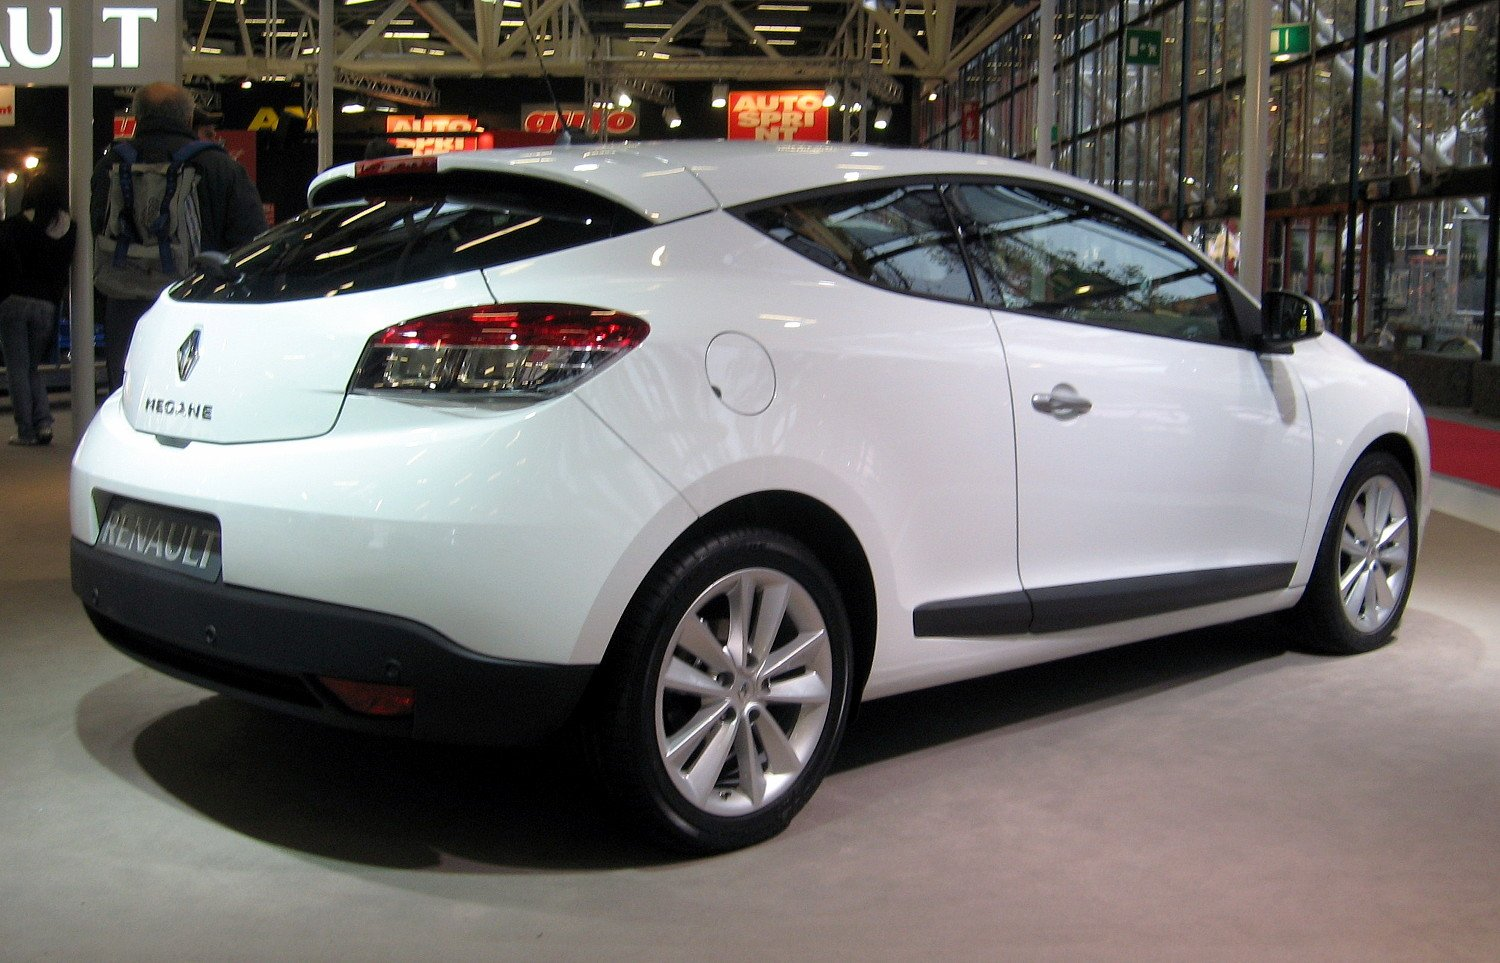 renault megane iii coupe 2009 wallpaper